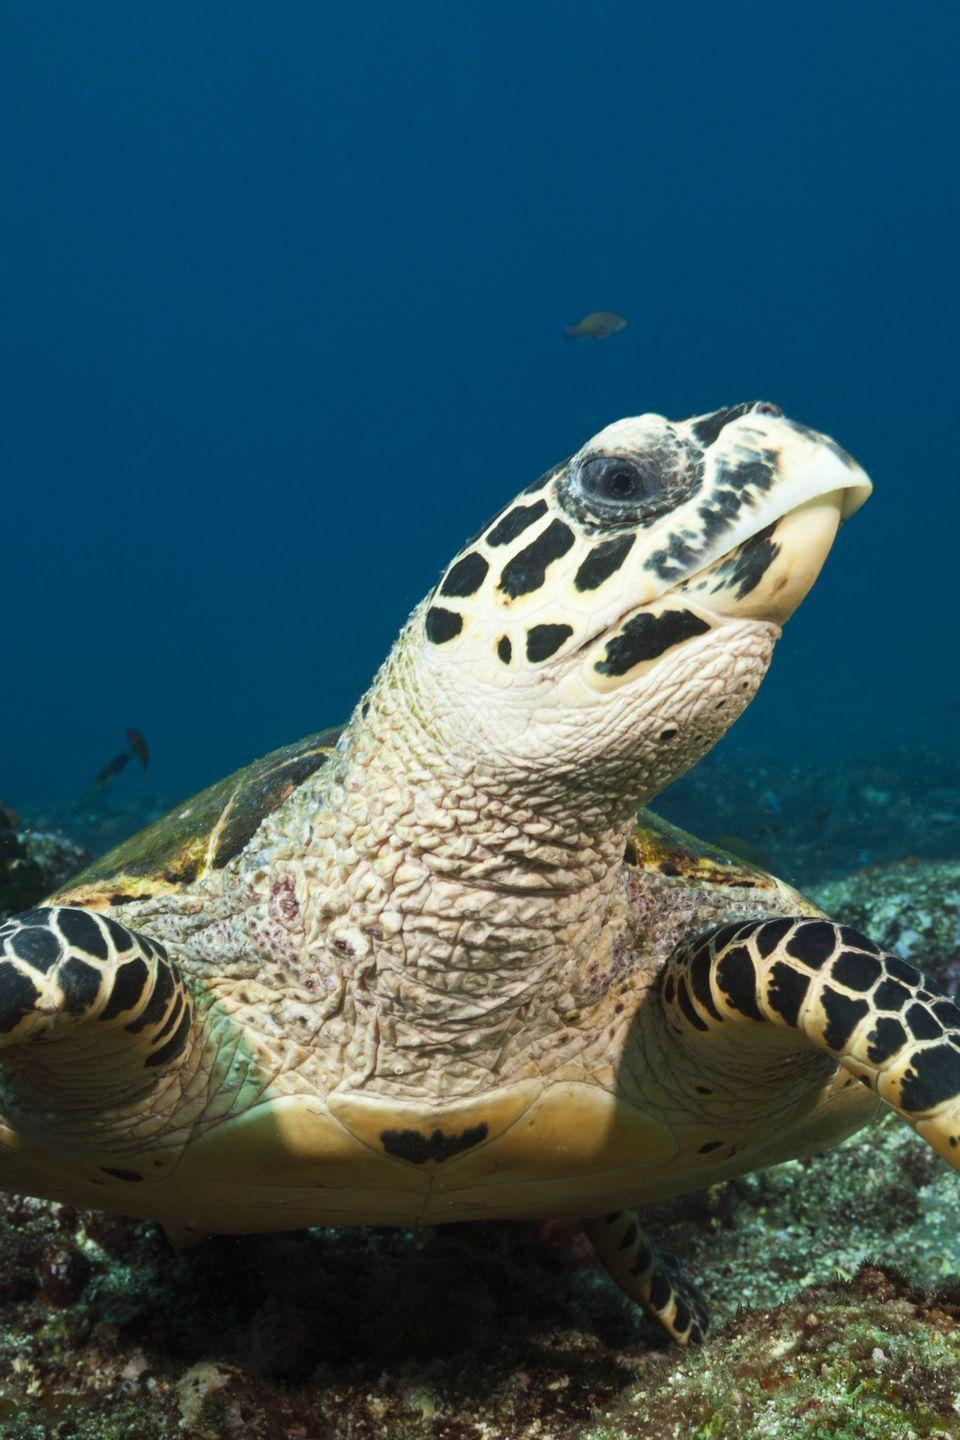 "<p><strong>Scientific classification: </strong><em>Eretmochelys imbricata</em></p><p><strong>Location:</strong> Worldwide</p><p>All sea turtles are threatened with extinction, but the Hawksbill Sea Turtle is the closest to the brink, followed by its cousin, the Kemp's ridley sea turtle.</p><p>The Hawksbill grows slowly and breeds rarely, which, coupled with human hunting, has driven the species to the brink. Only 15,000 egg-laying capable females remain distributed in a wide ranging area mostly across the southern hemisphere. The turtles are still, today, exploited for food and trinkets, putting wild populations continually in danger. One of the greatest culprits is the usage of its shell for <a href=""https://www.worldwildlife.org/species/hawksbill-turtle"" rel=""nofollow noopener"" target=""_blank"" data-ylk=""slk:&quot;tortoiseshell&quot;"" class=""link rapid-noclick-resp"">""tortoiseshell""</a> jewelry and keepsakes.</p>"